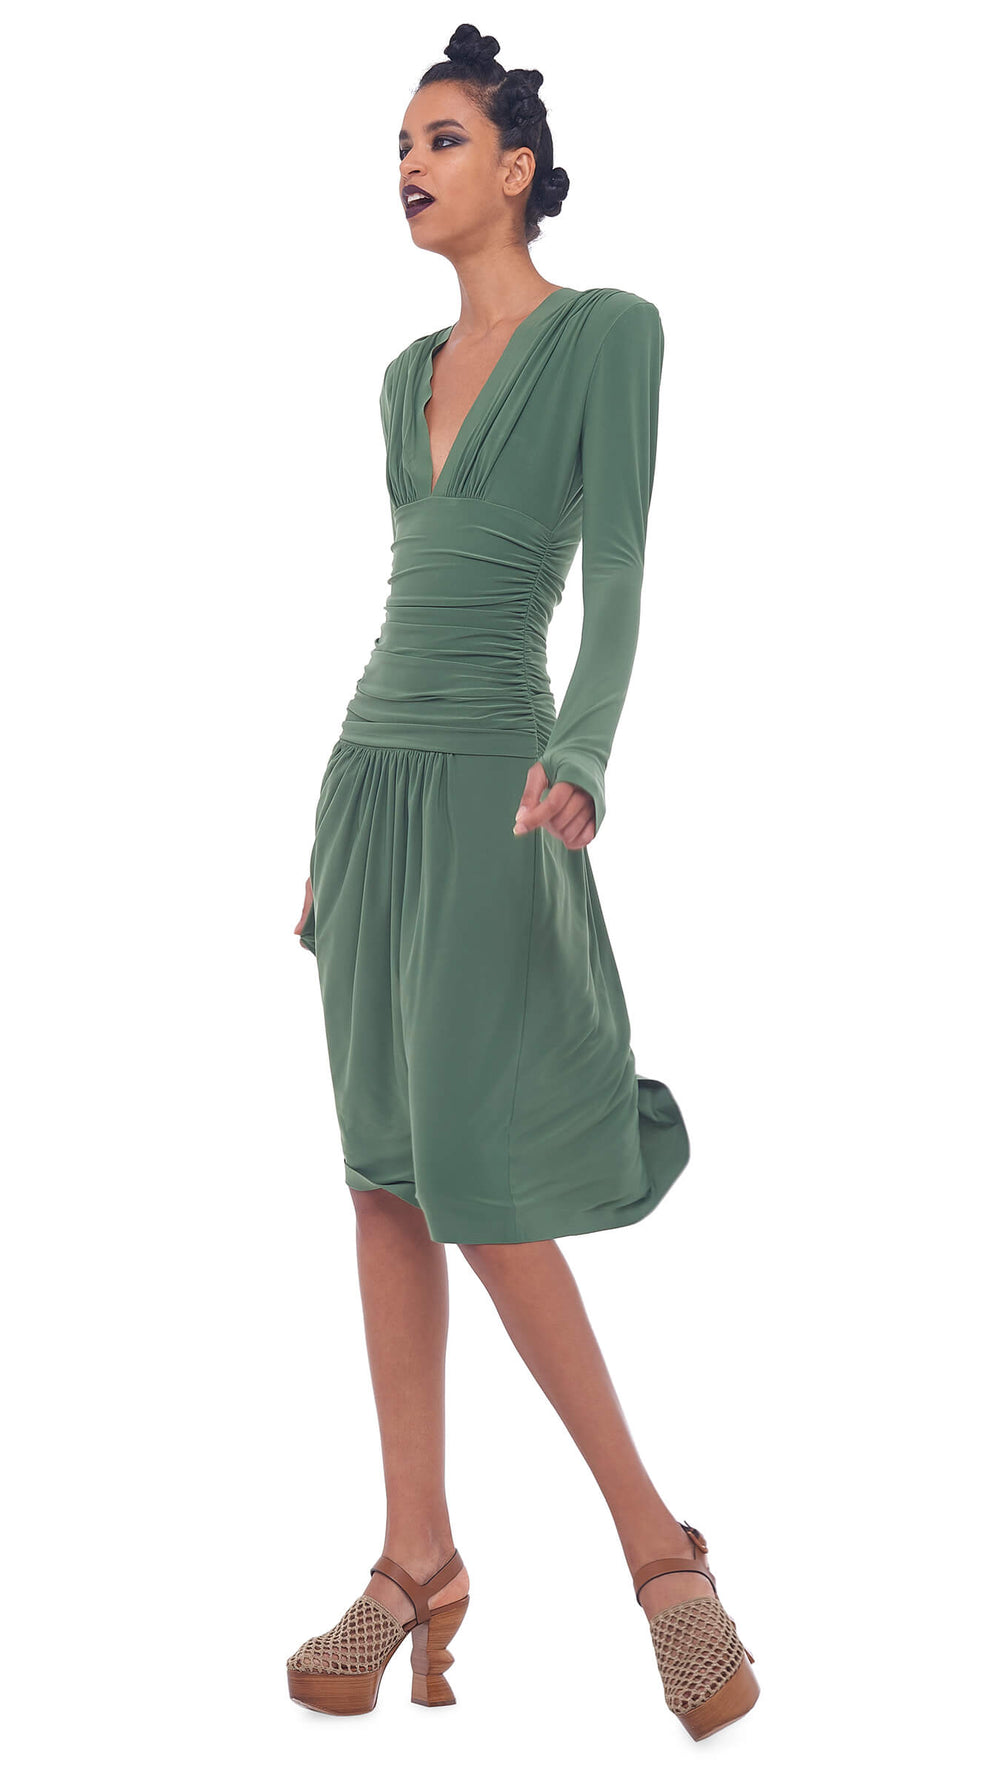 V NECK LONG SLEEVE SHIRRED WAIST DRESS WITH SHOULDER PADS